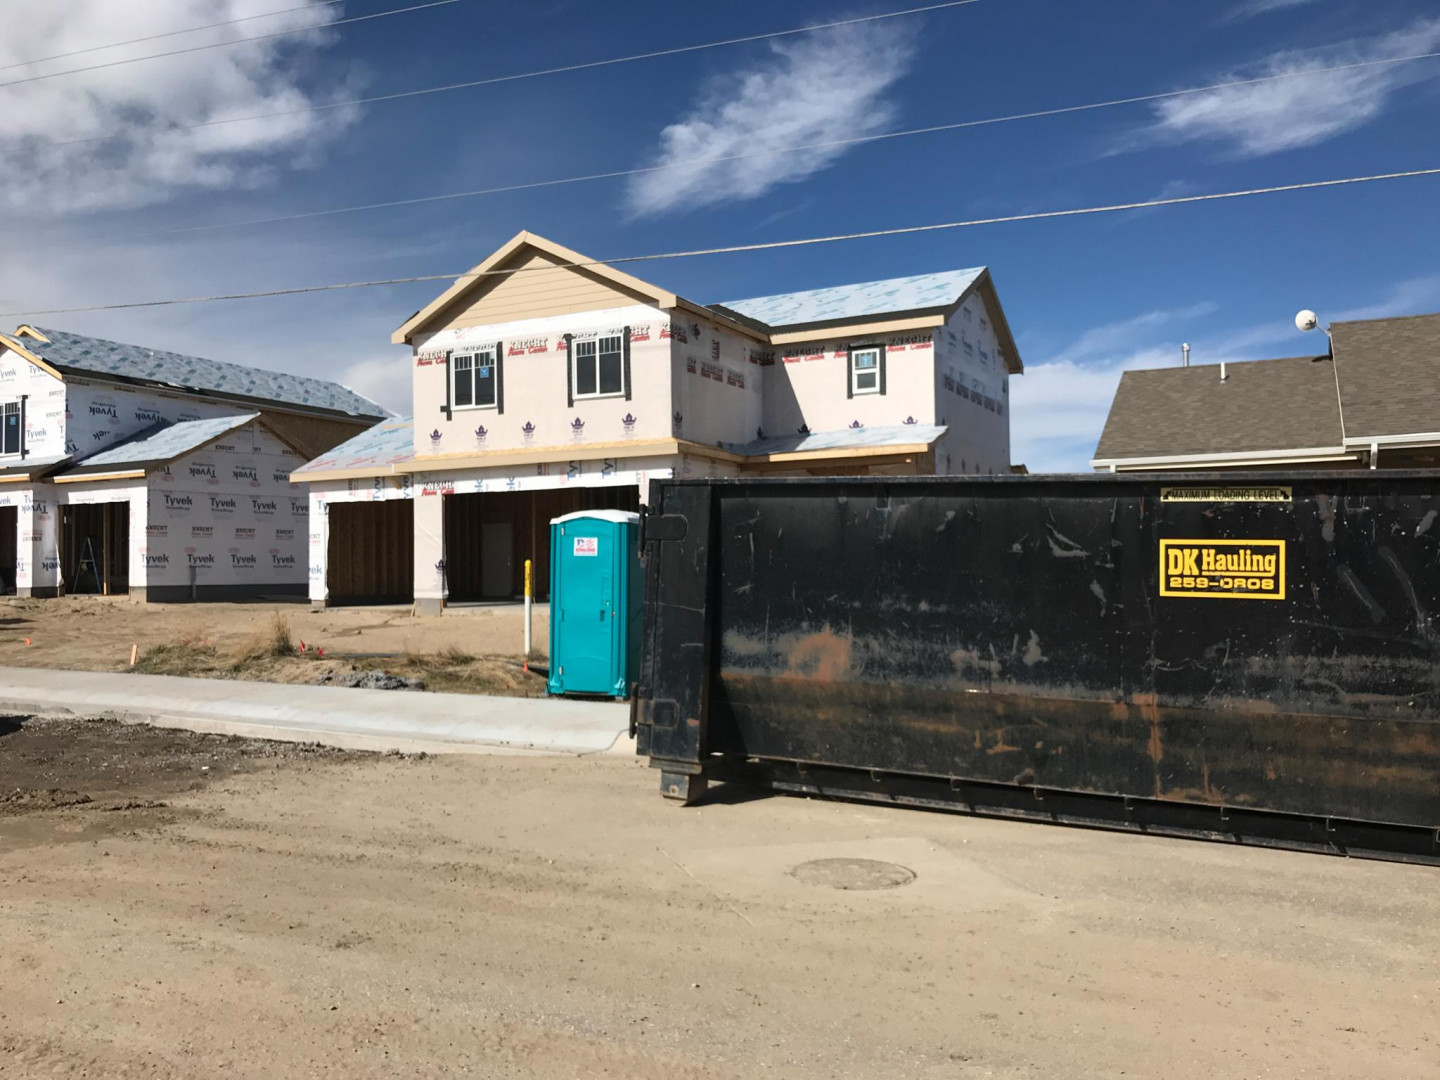 4 projects that you may need a dumpster for